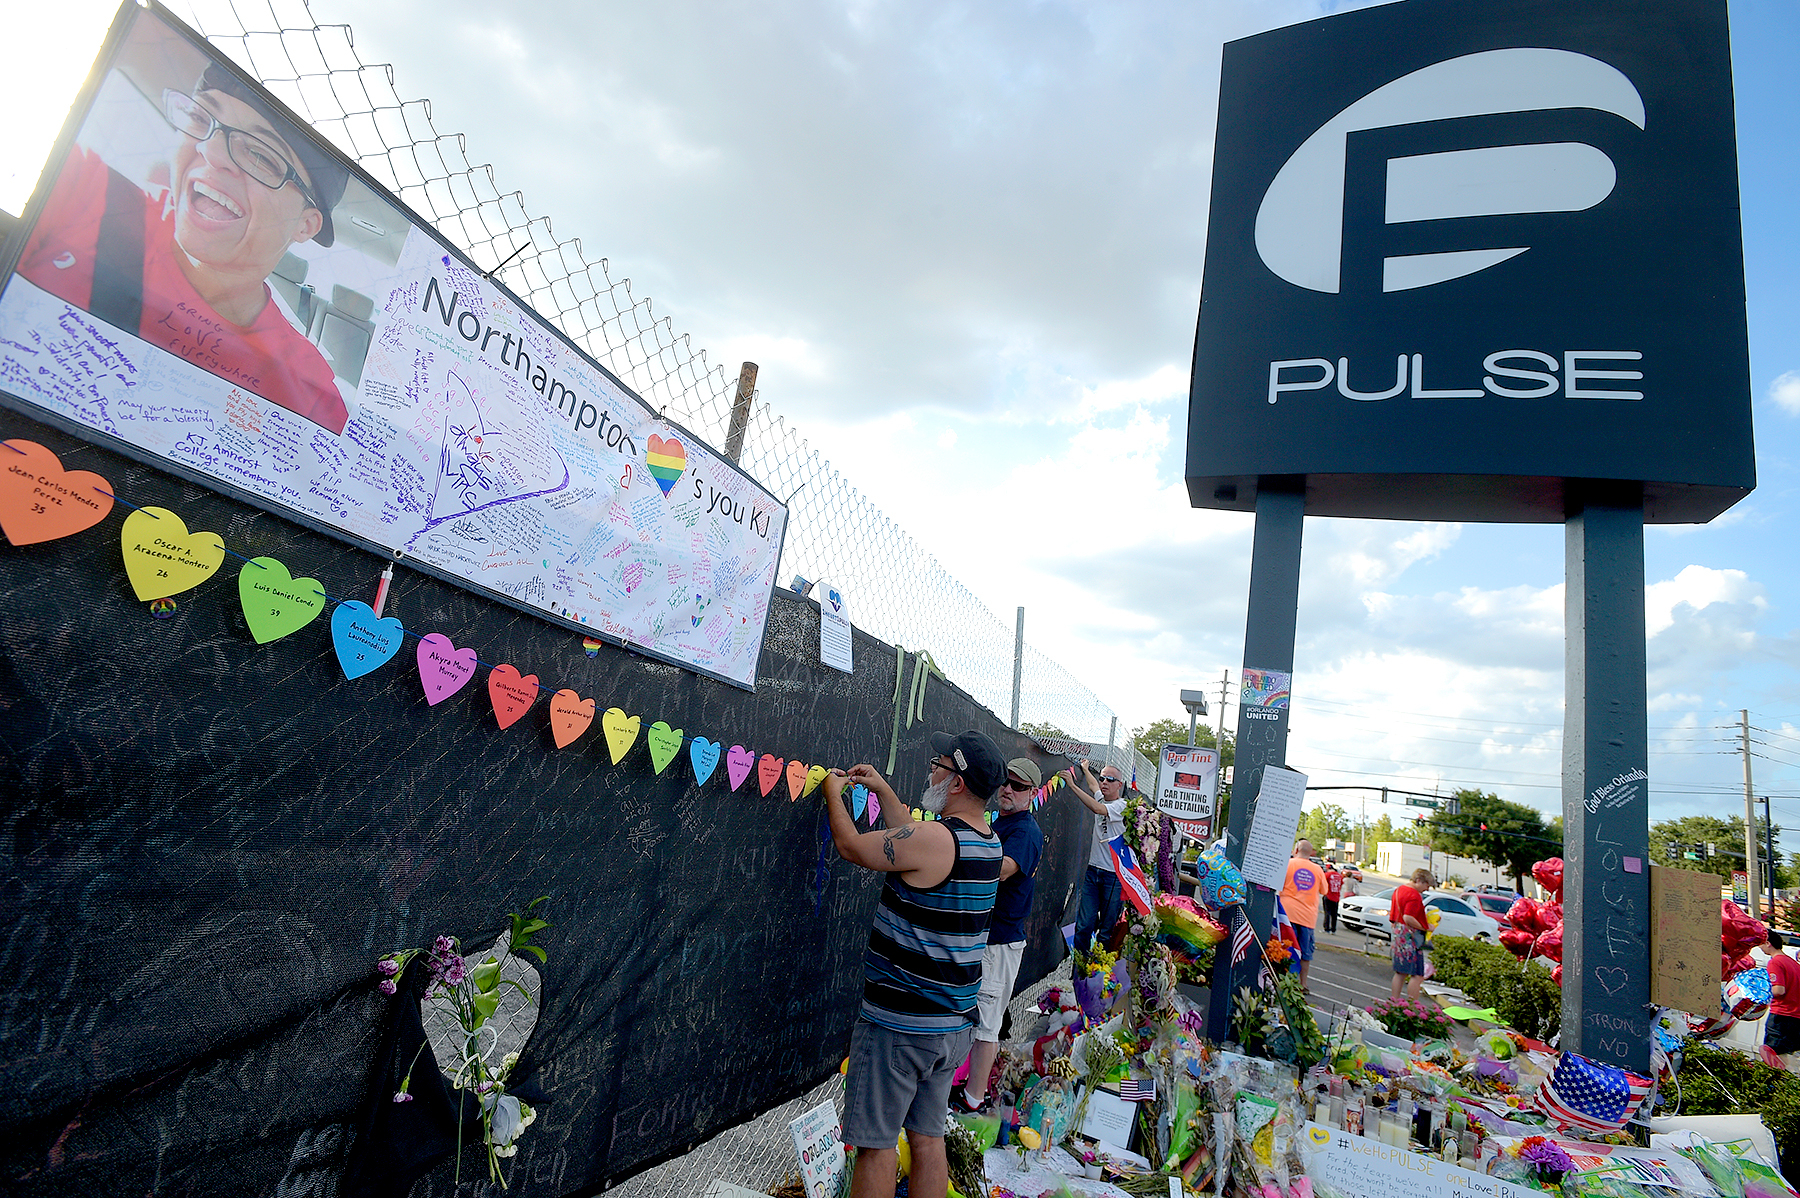 Mourners visit a makeshift memorial for victims of the Pulse nightclub shooting in front of the location, Saturday, June 25, 2016, in Orlando.